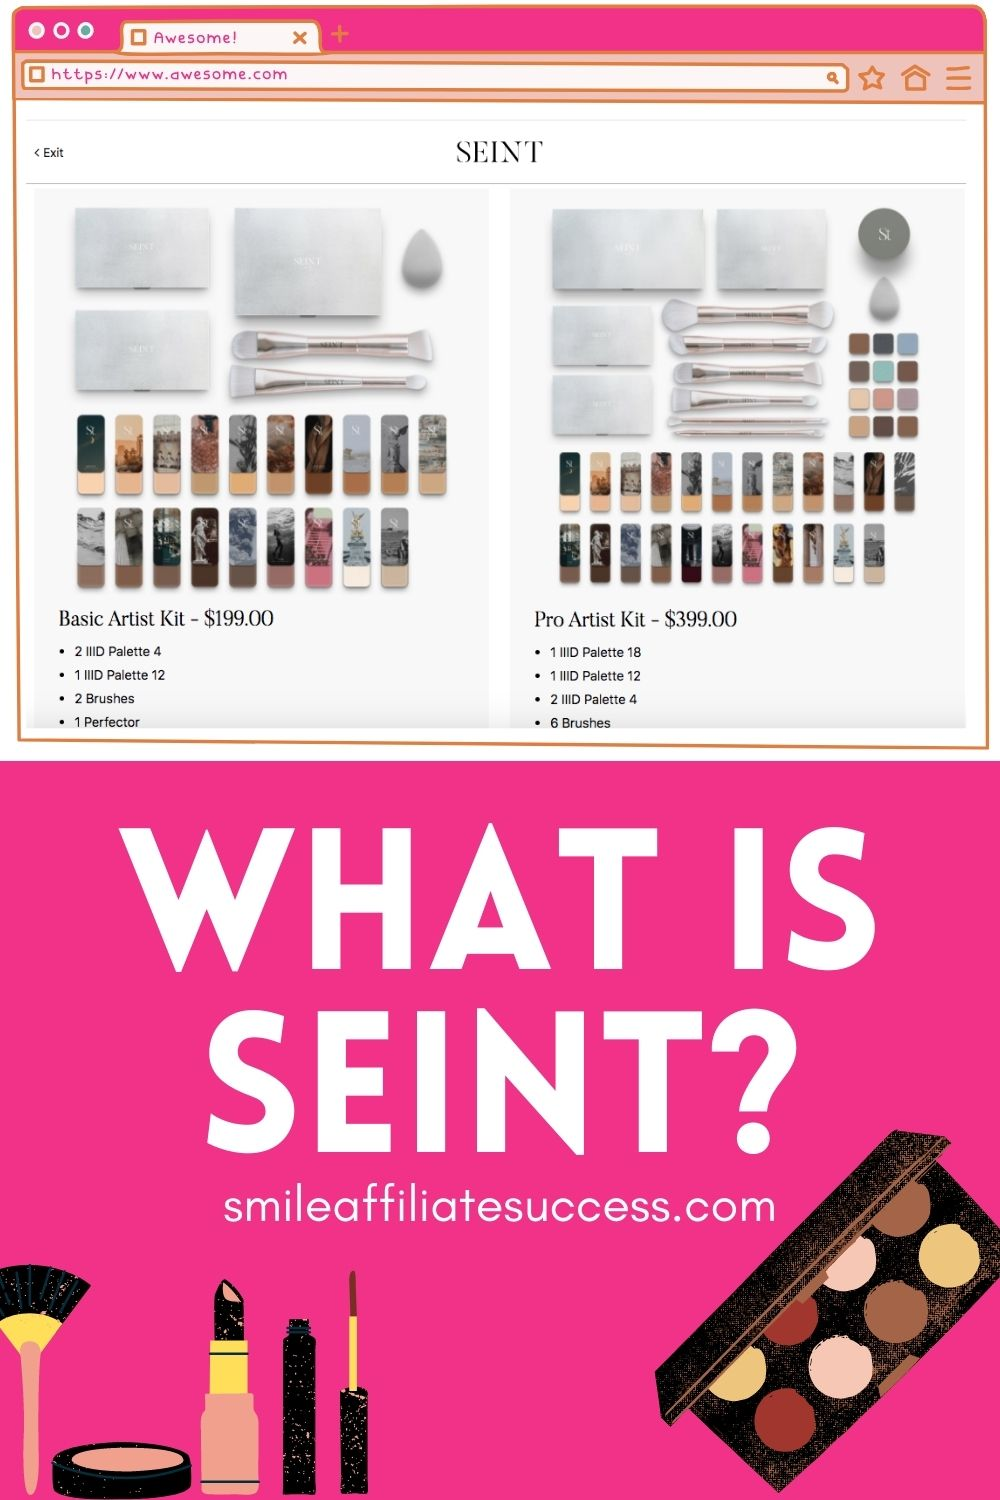 What Is Seint?